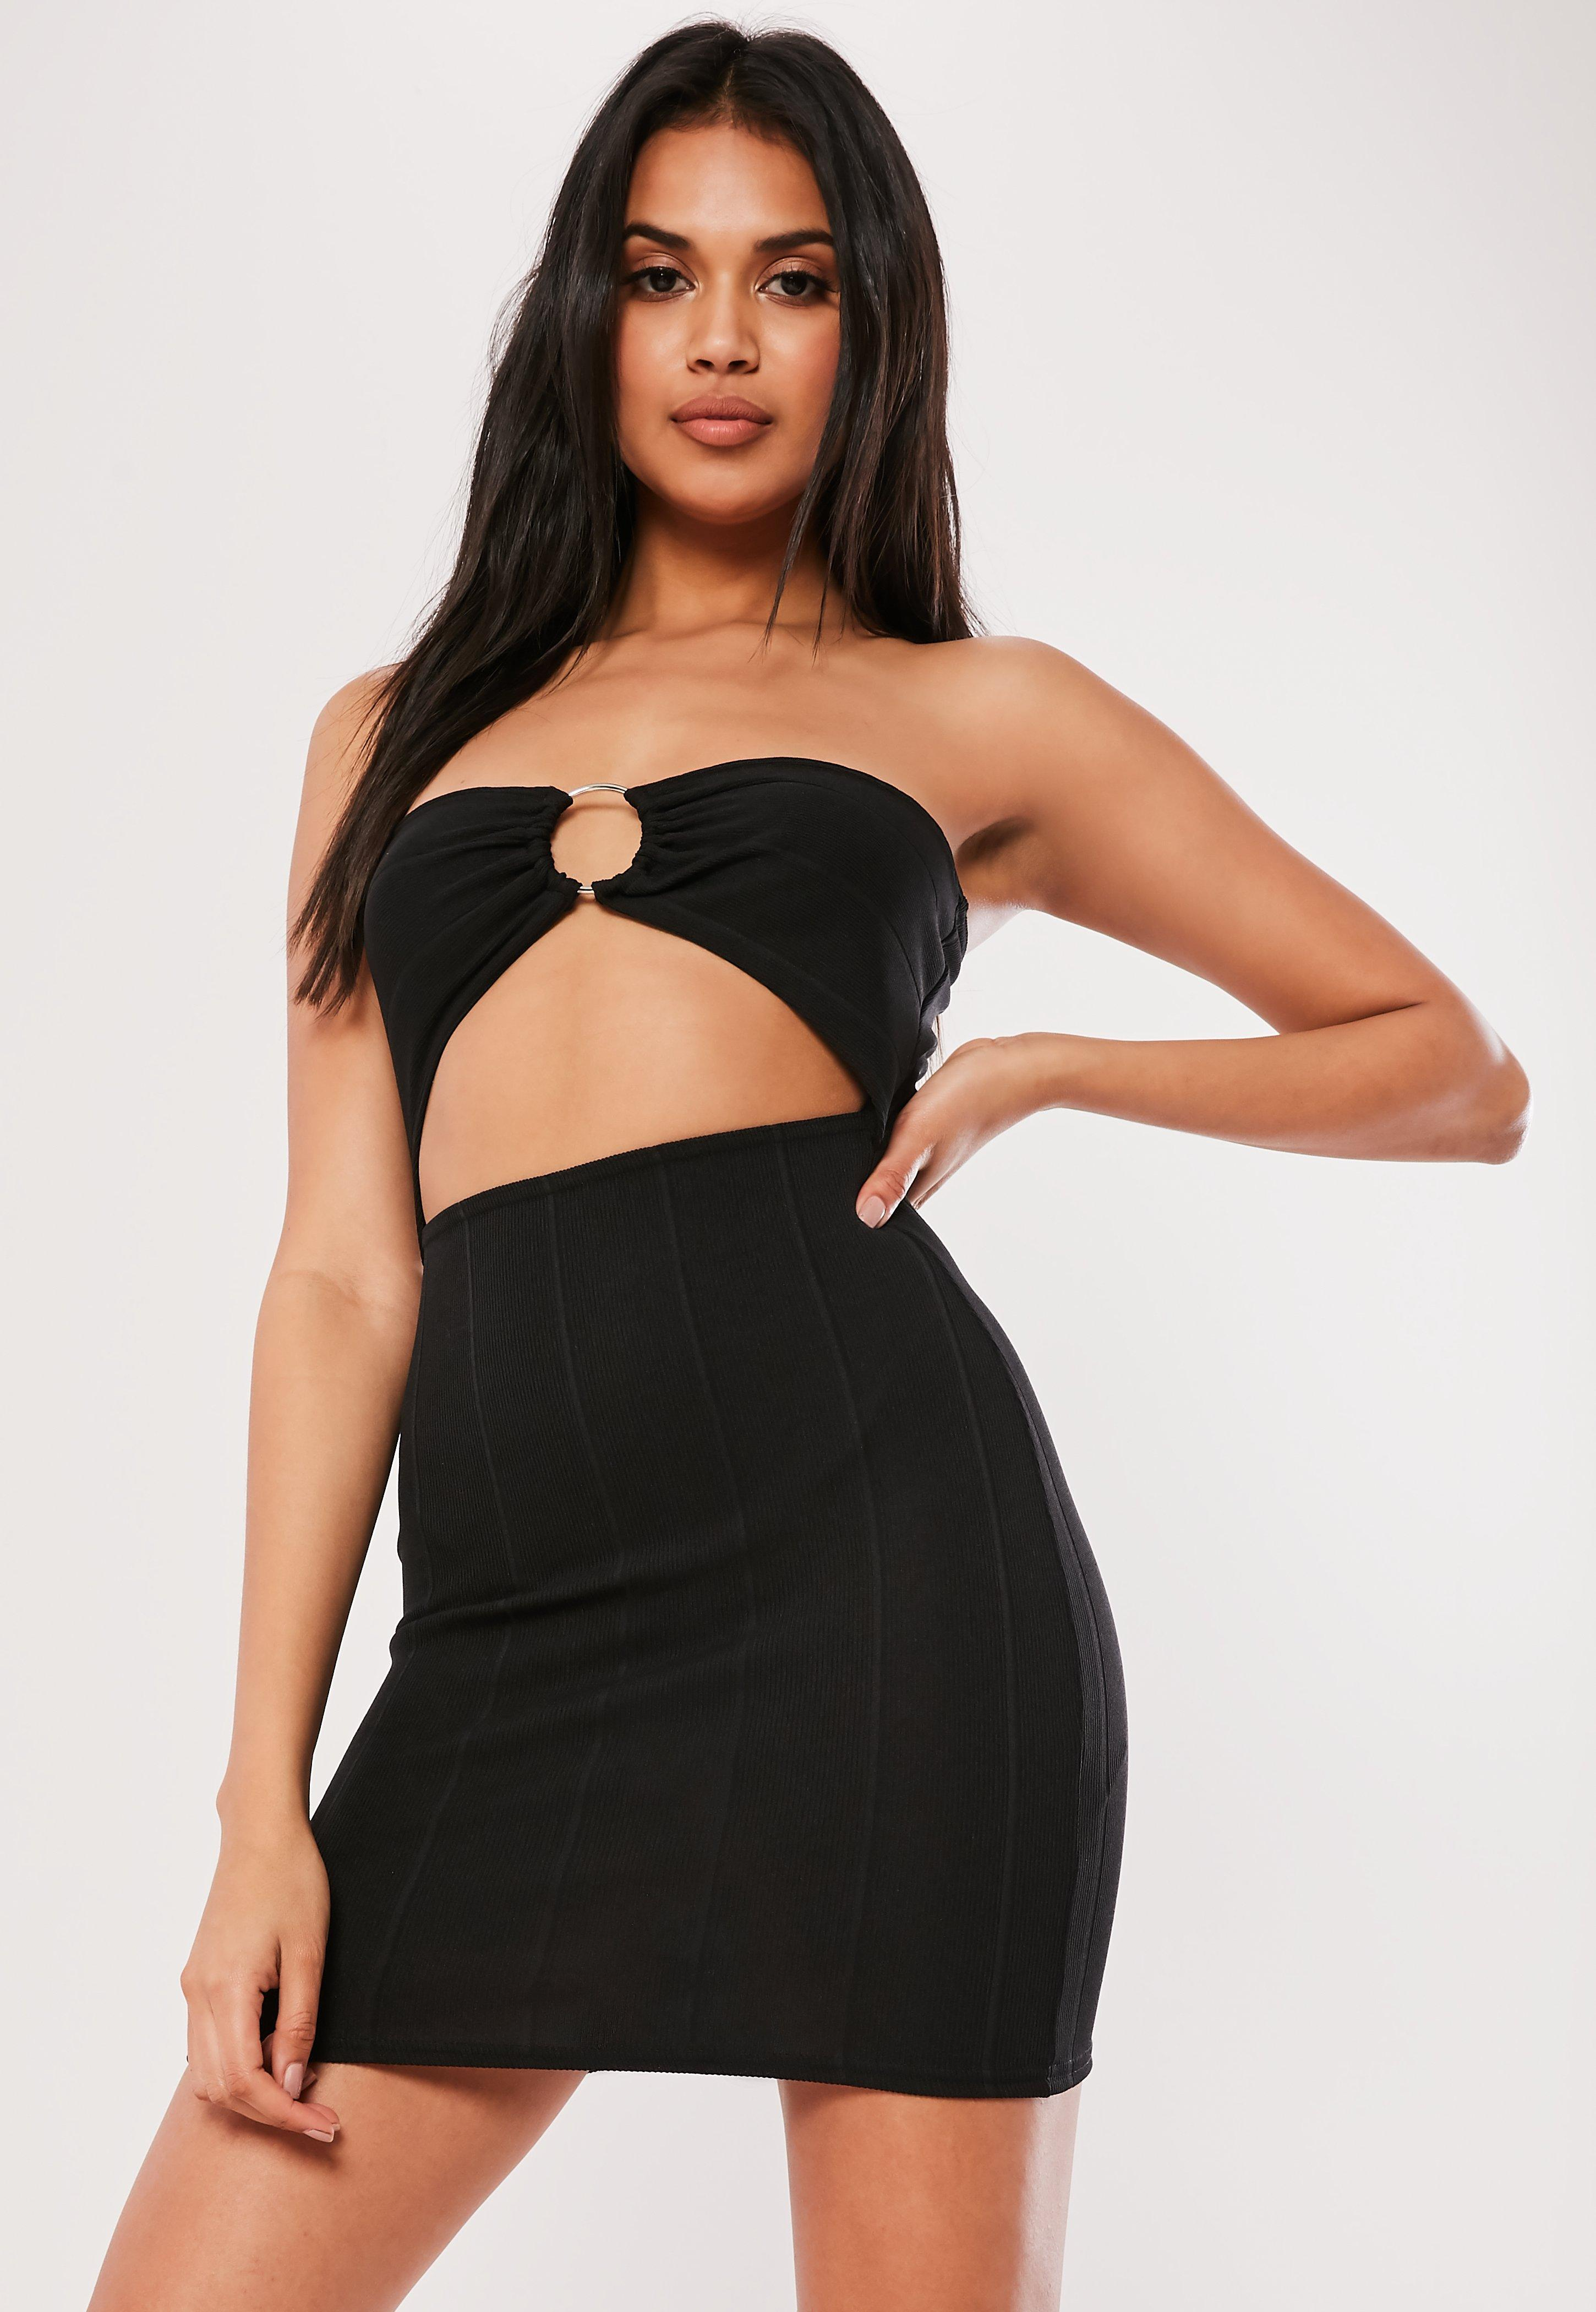 b37a6bb8cad Missguided Black Bandeau Ring Detail Cut Out Mini Dress in Black - Lyst